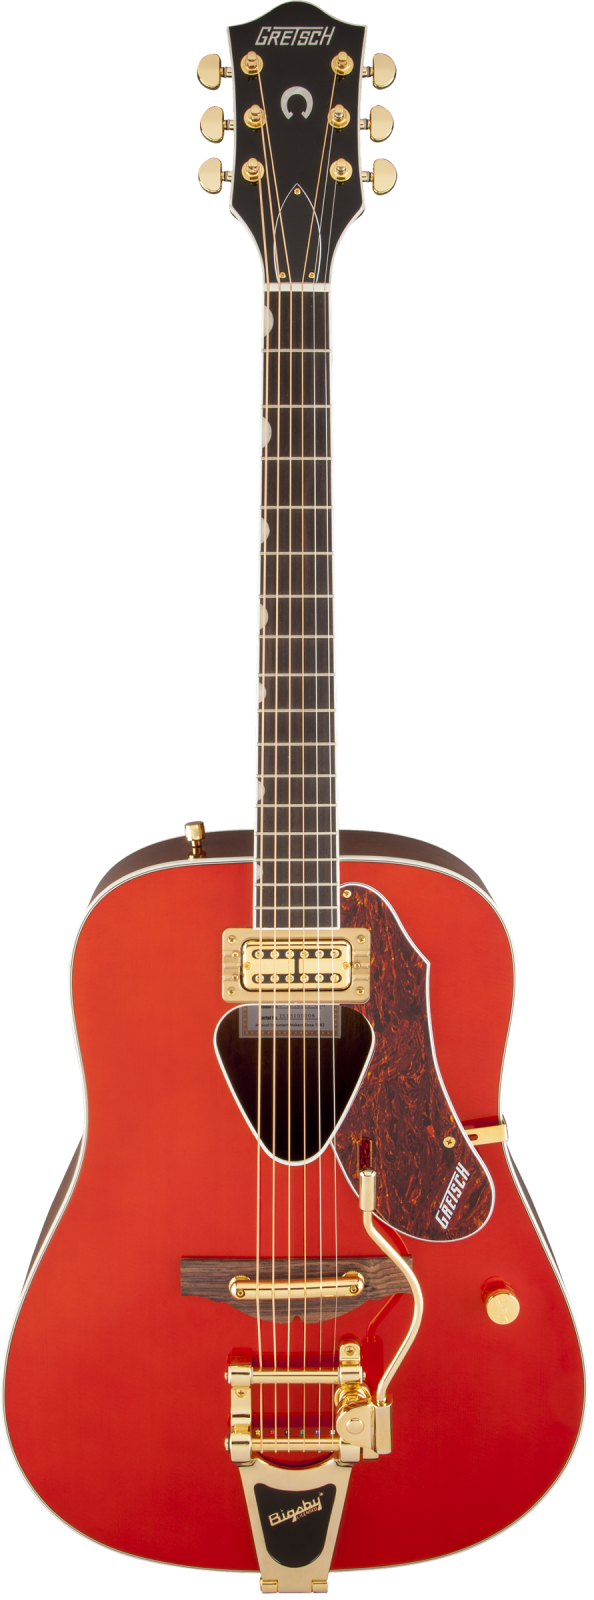 Gretsch G5034TFT Rancher Dreadnought with Bigsby - Rosewood Fingerboard, Savannah Sunset